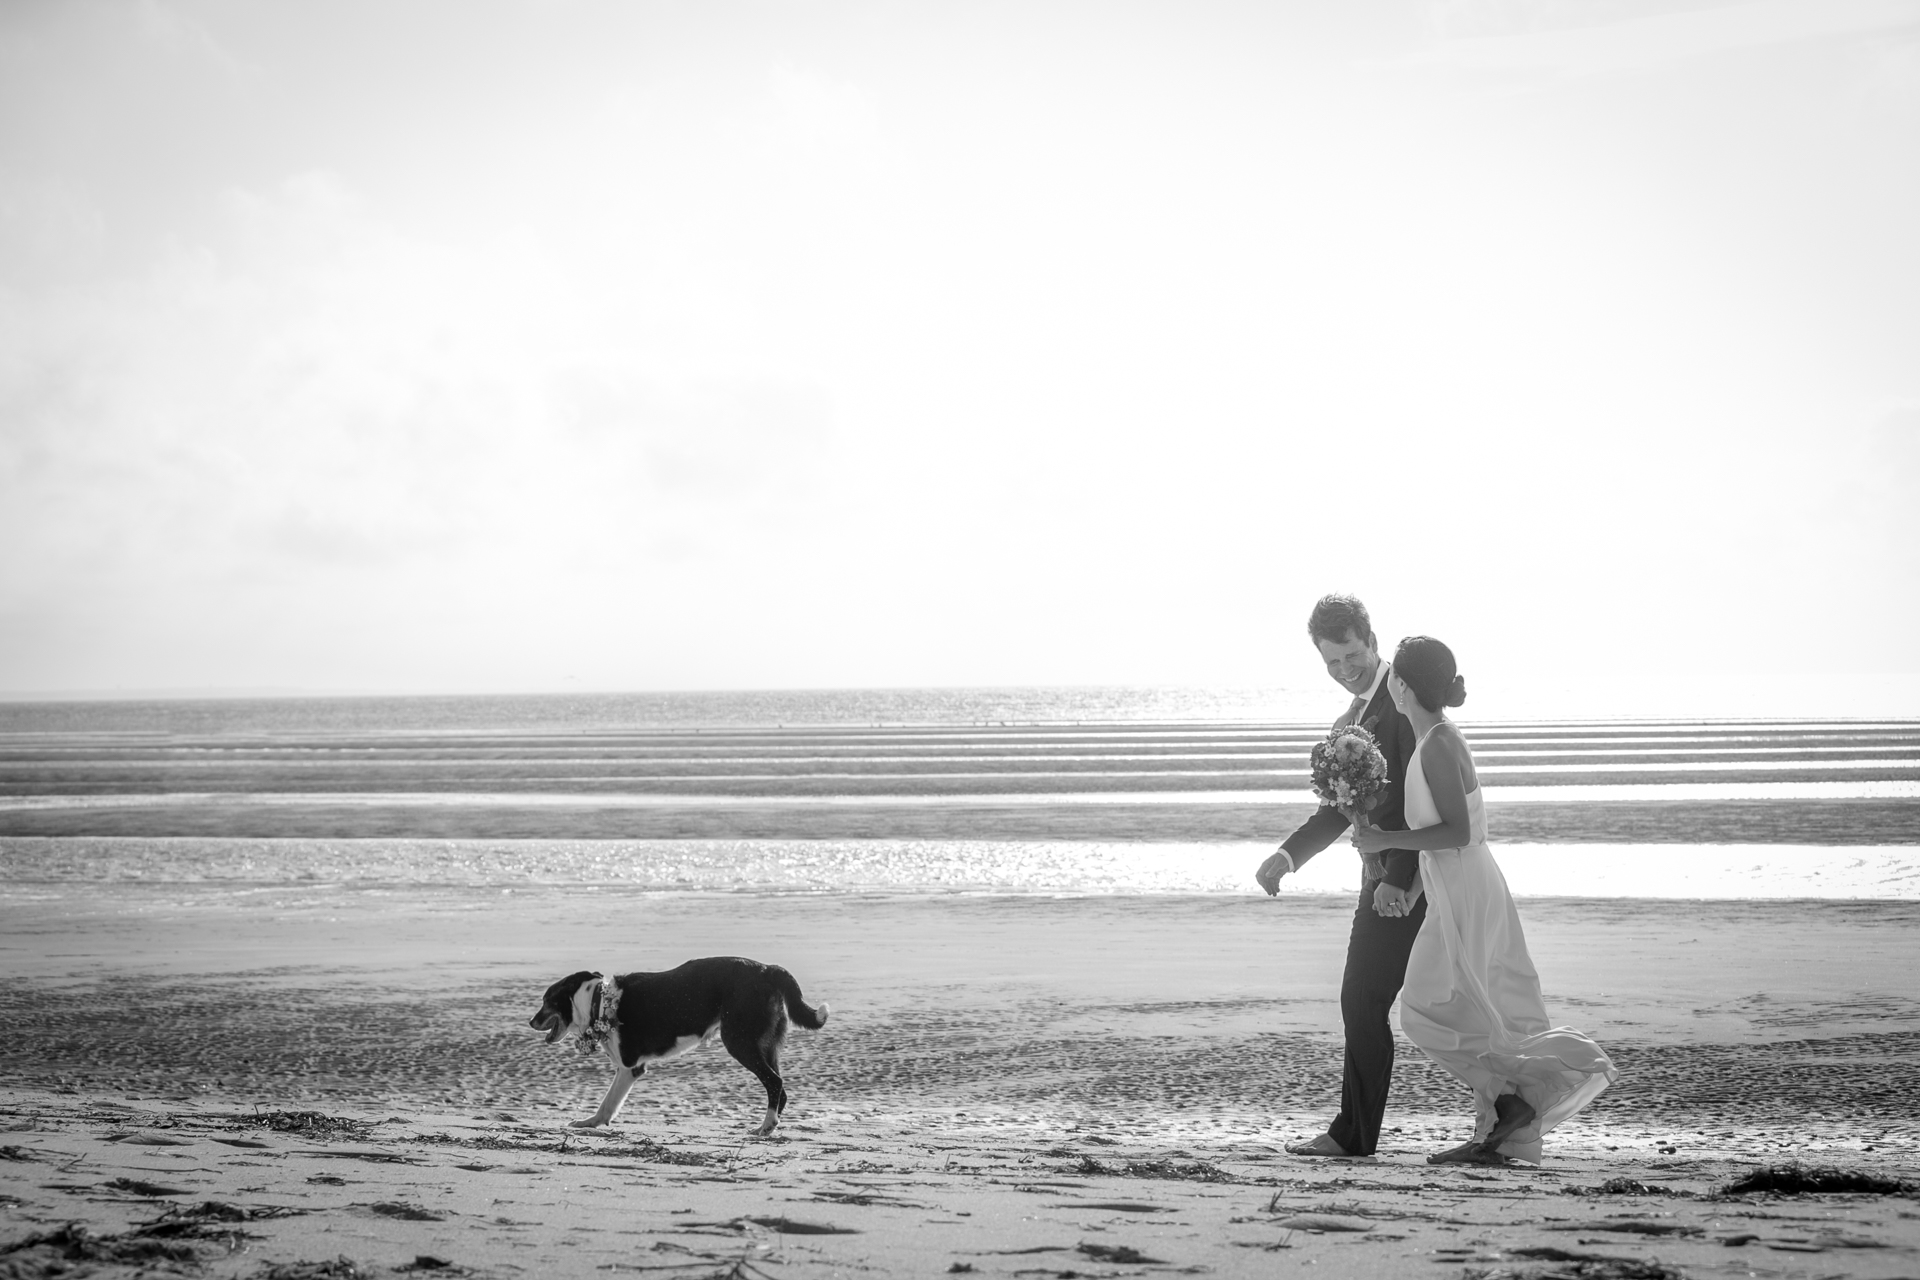 The bride and groom take a leisurely stroll on their way to the ceremony with their dog